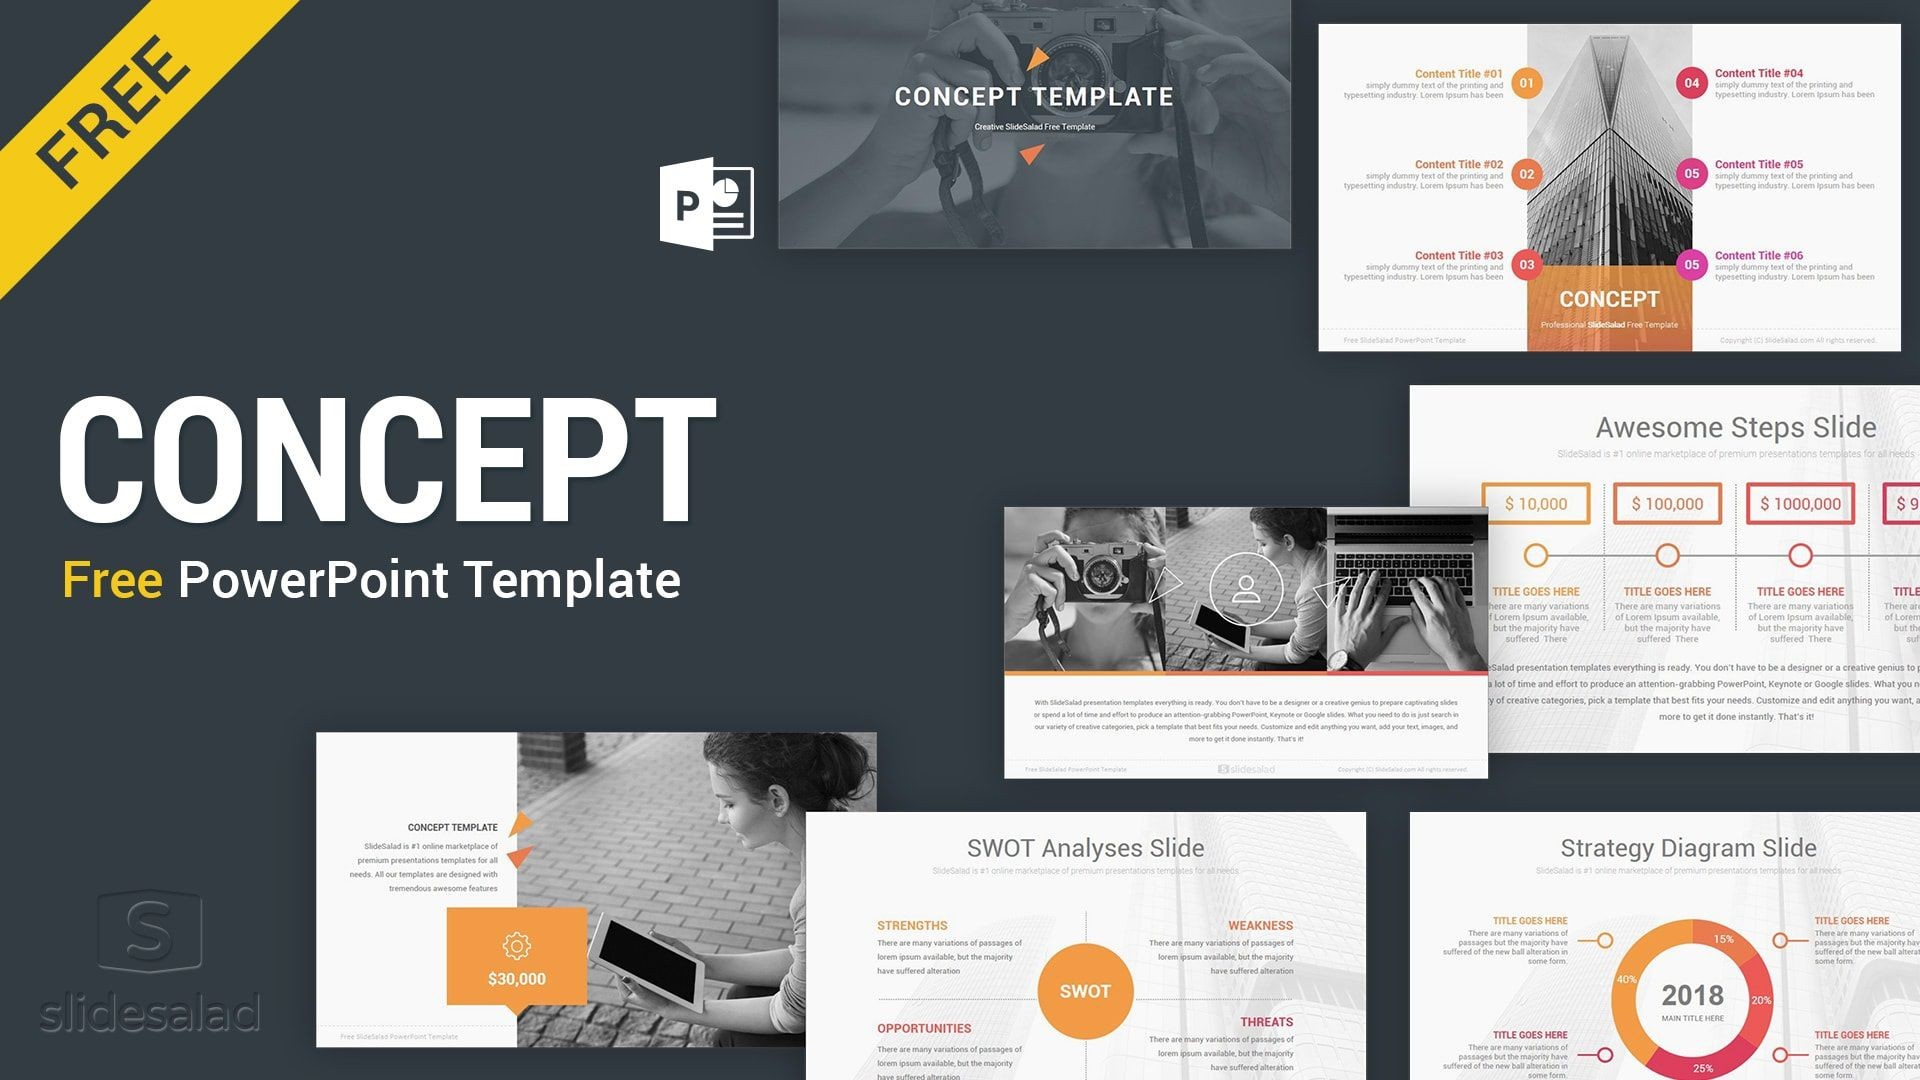 004 Singular Free Downloadable Powerpoint Template Design  Templates Download Animated Background Theme1920